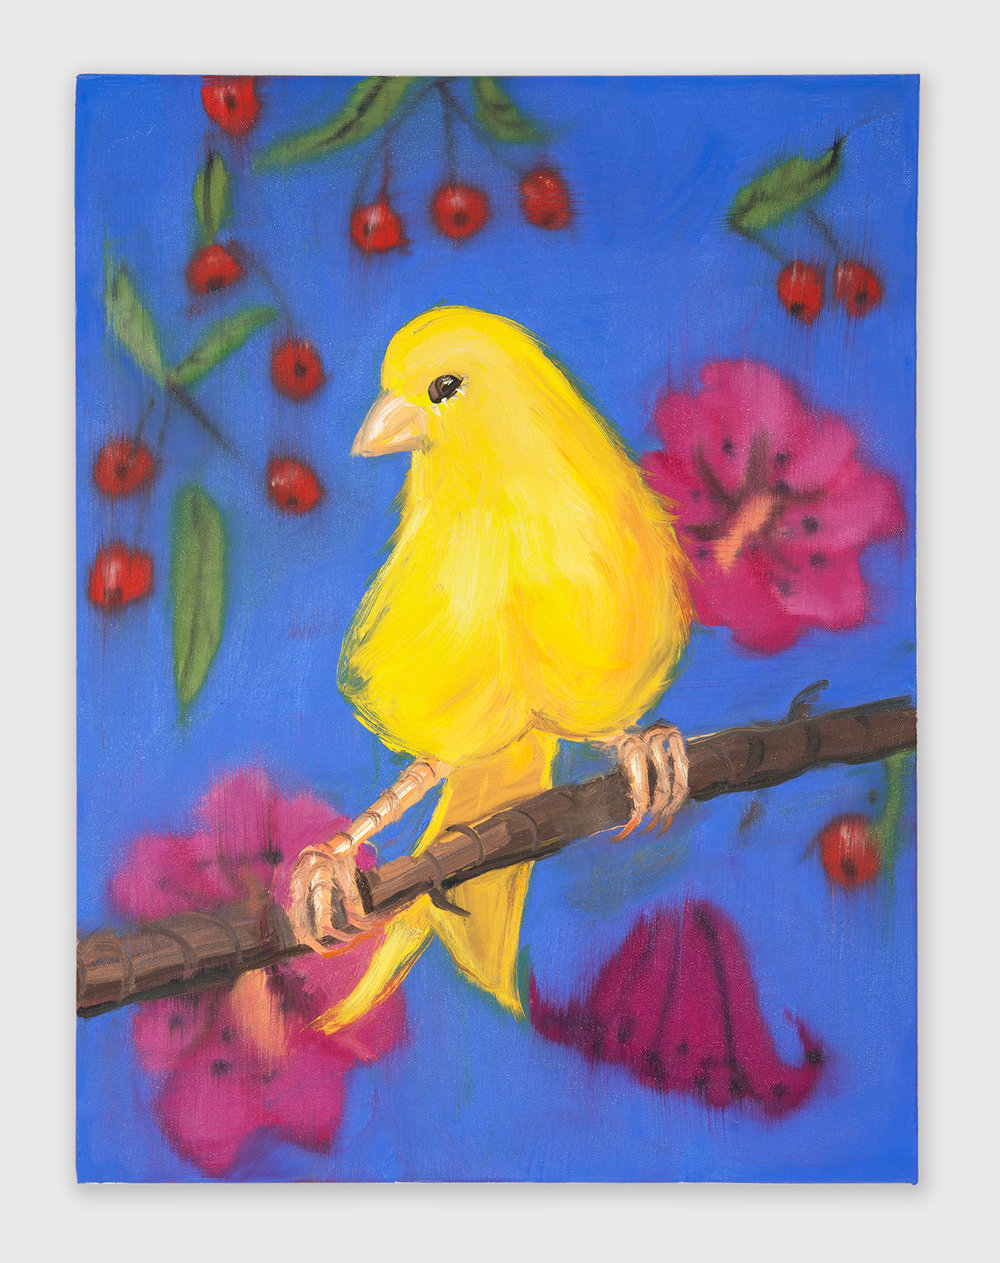 Ann Craven  Yello Fello (on Blue with Cherries)  2018 Oil on canvas 24h x 18w in AC171